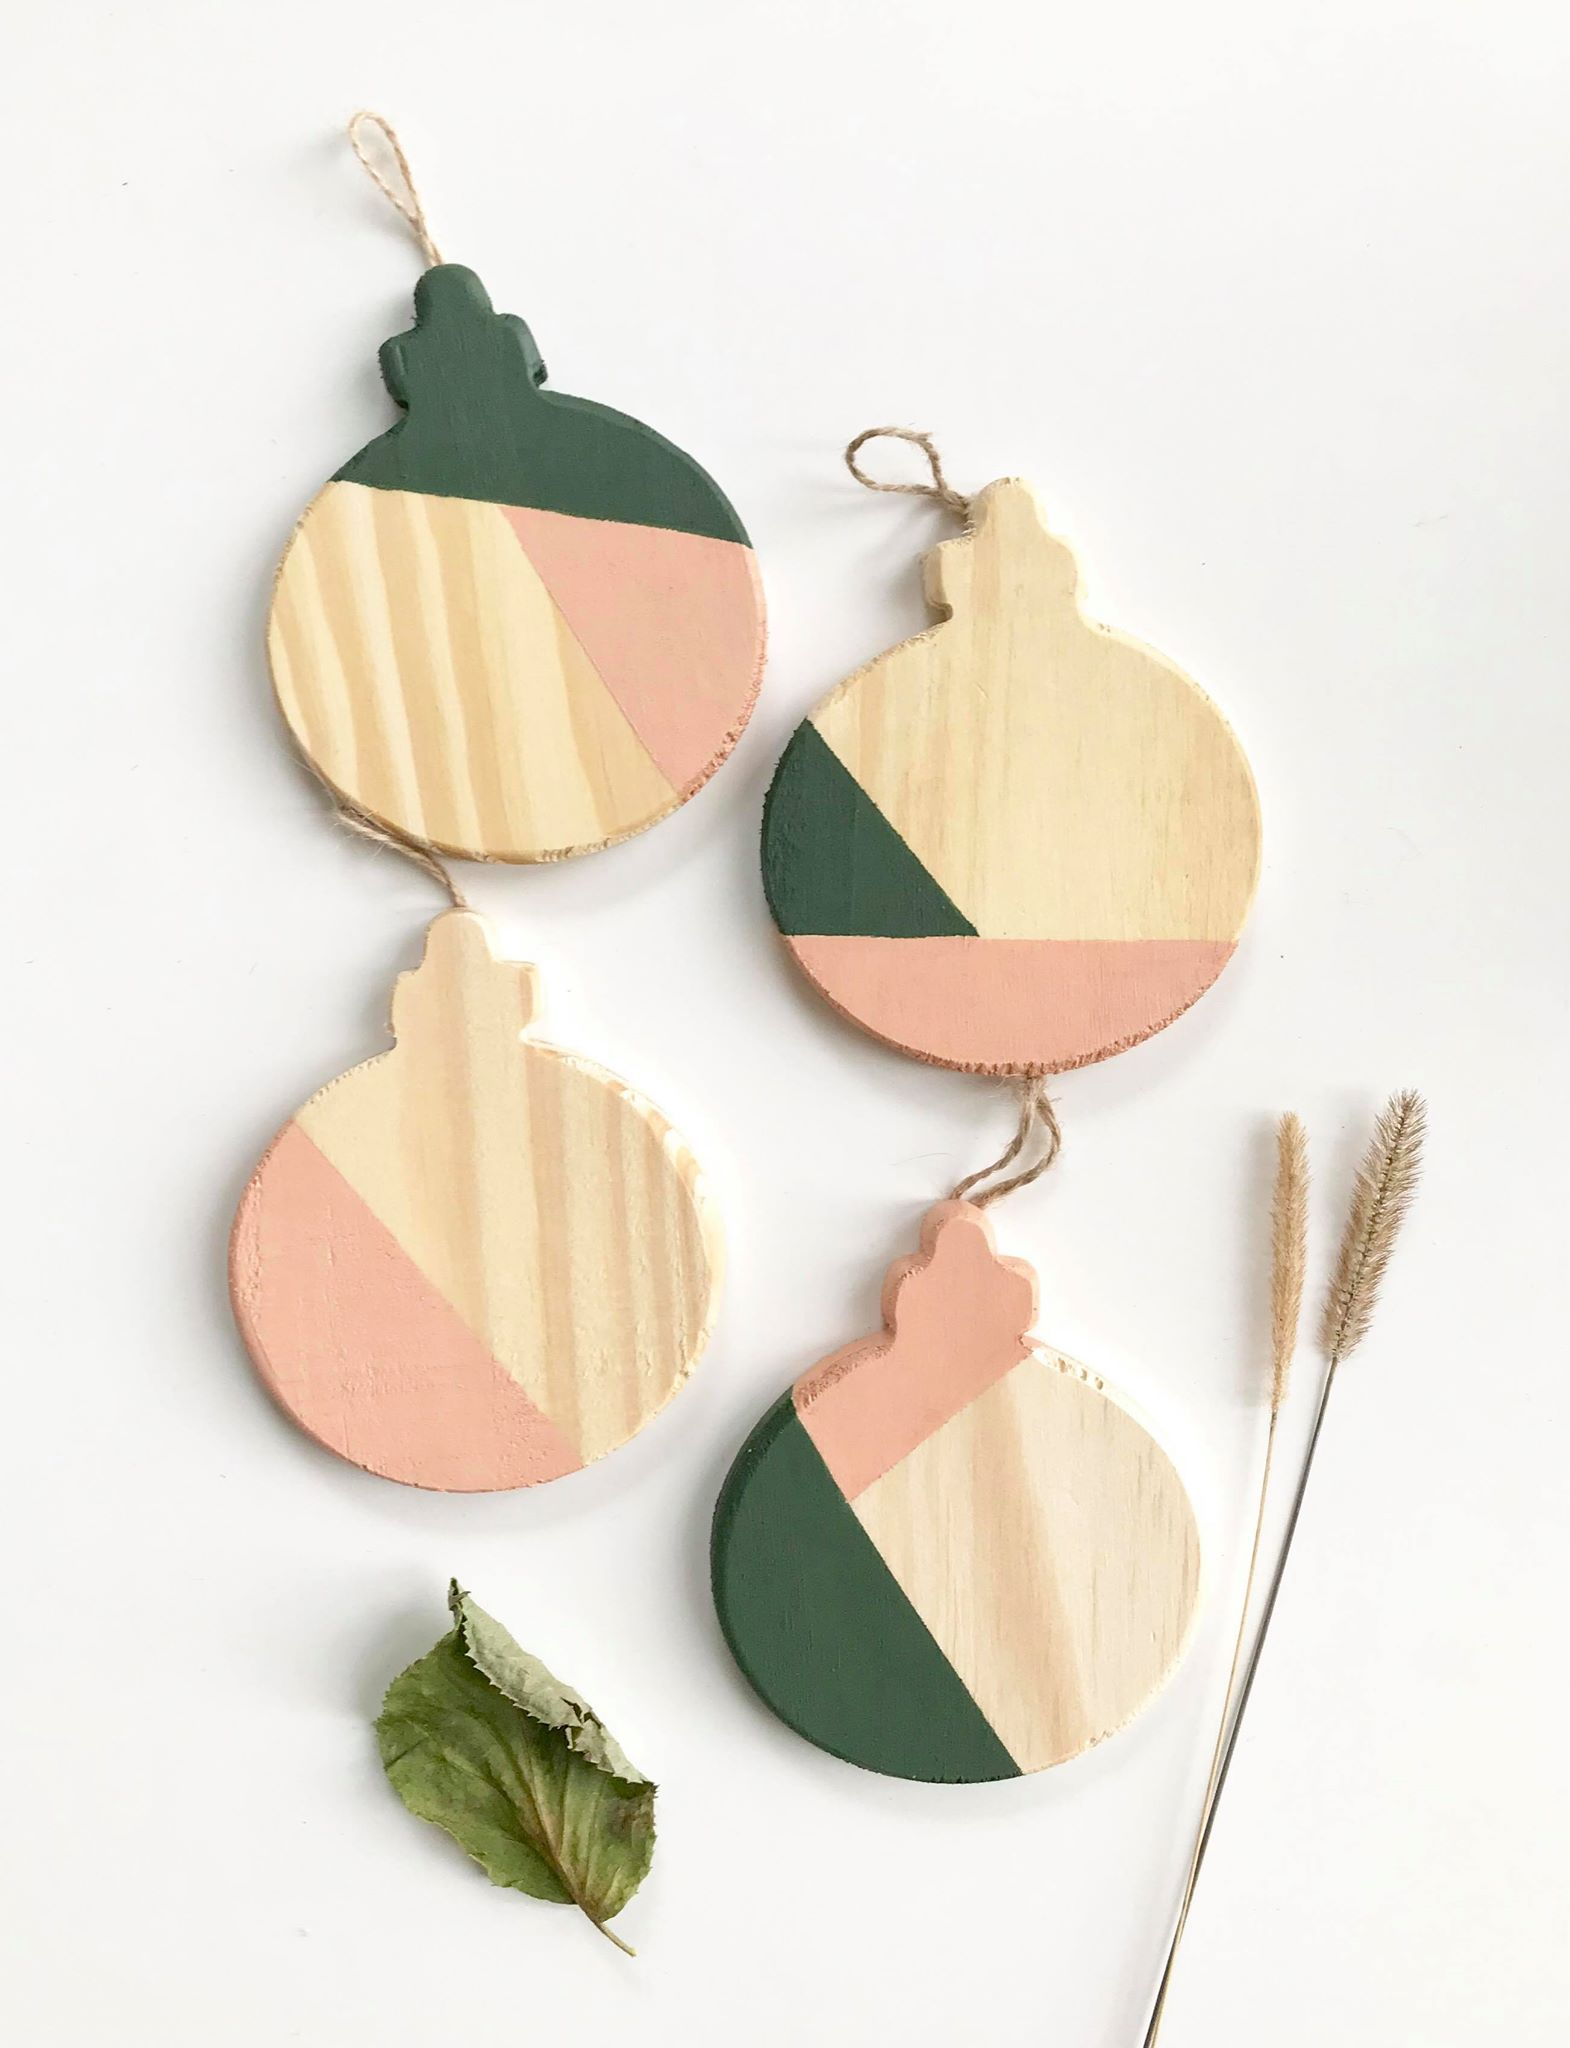 4 color block ornaments in green and blush pink